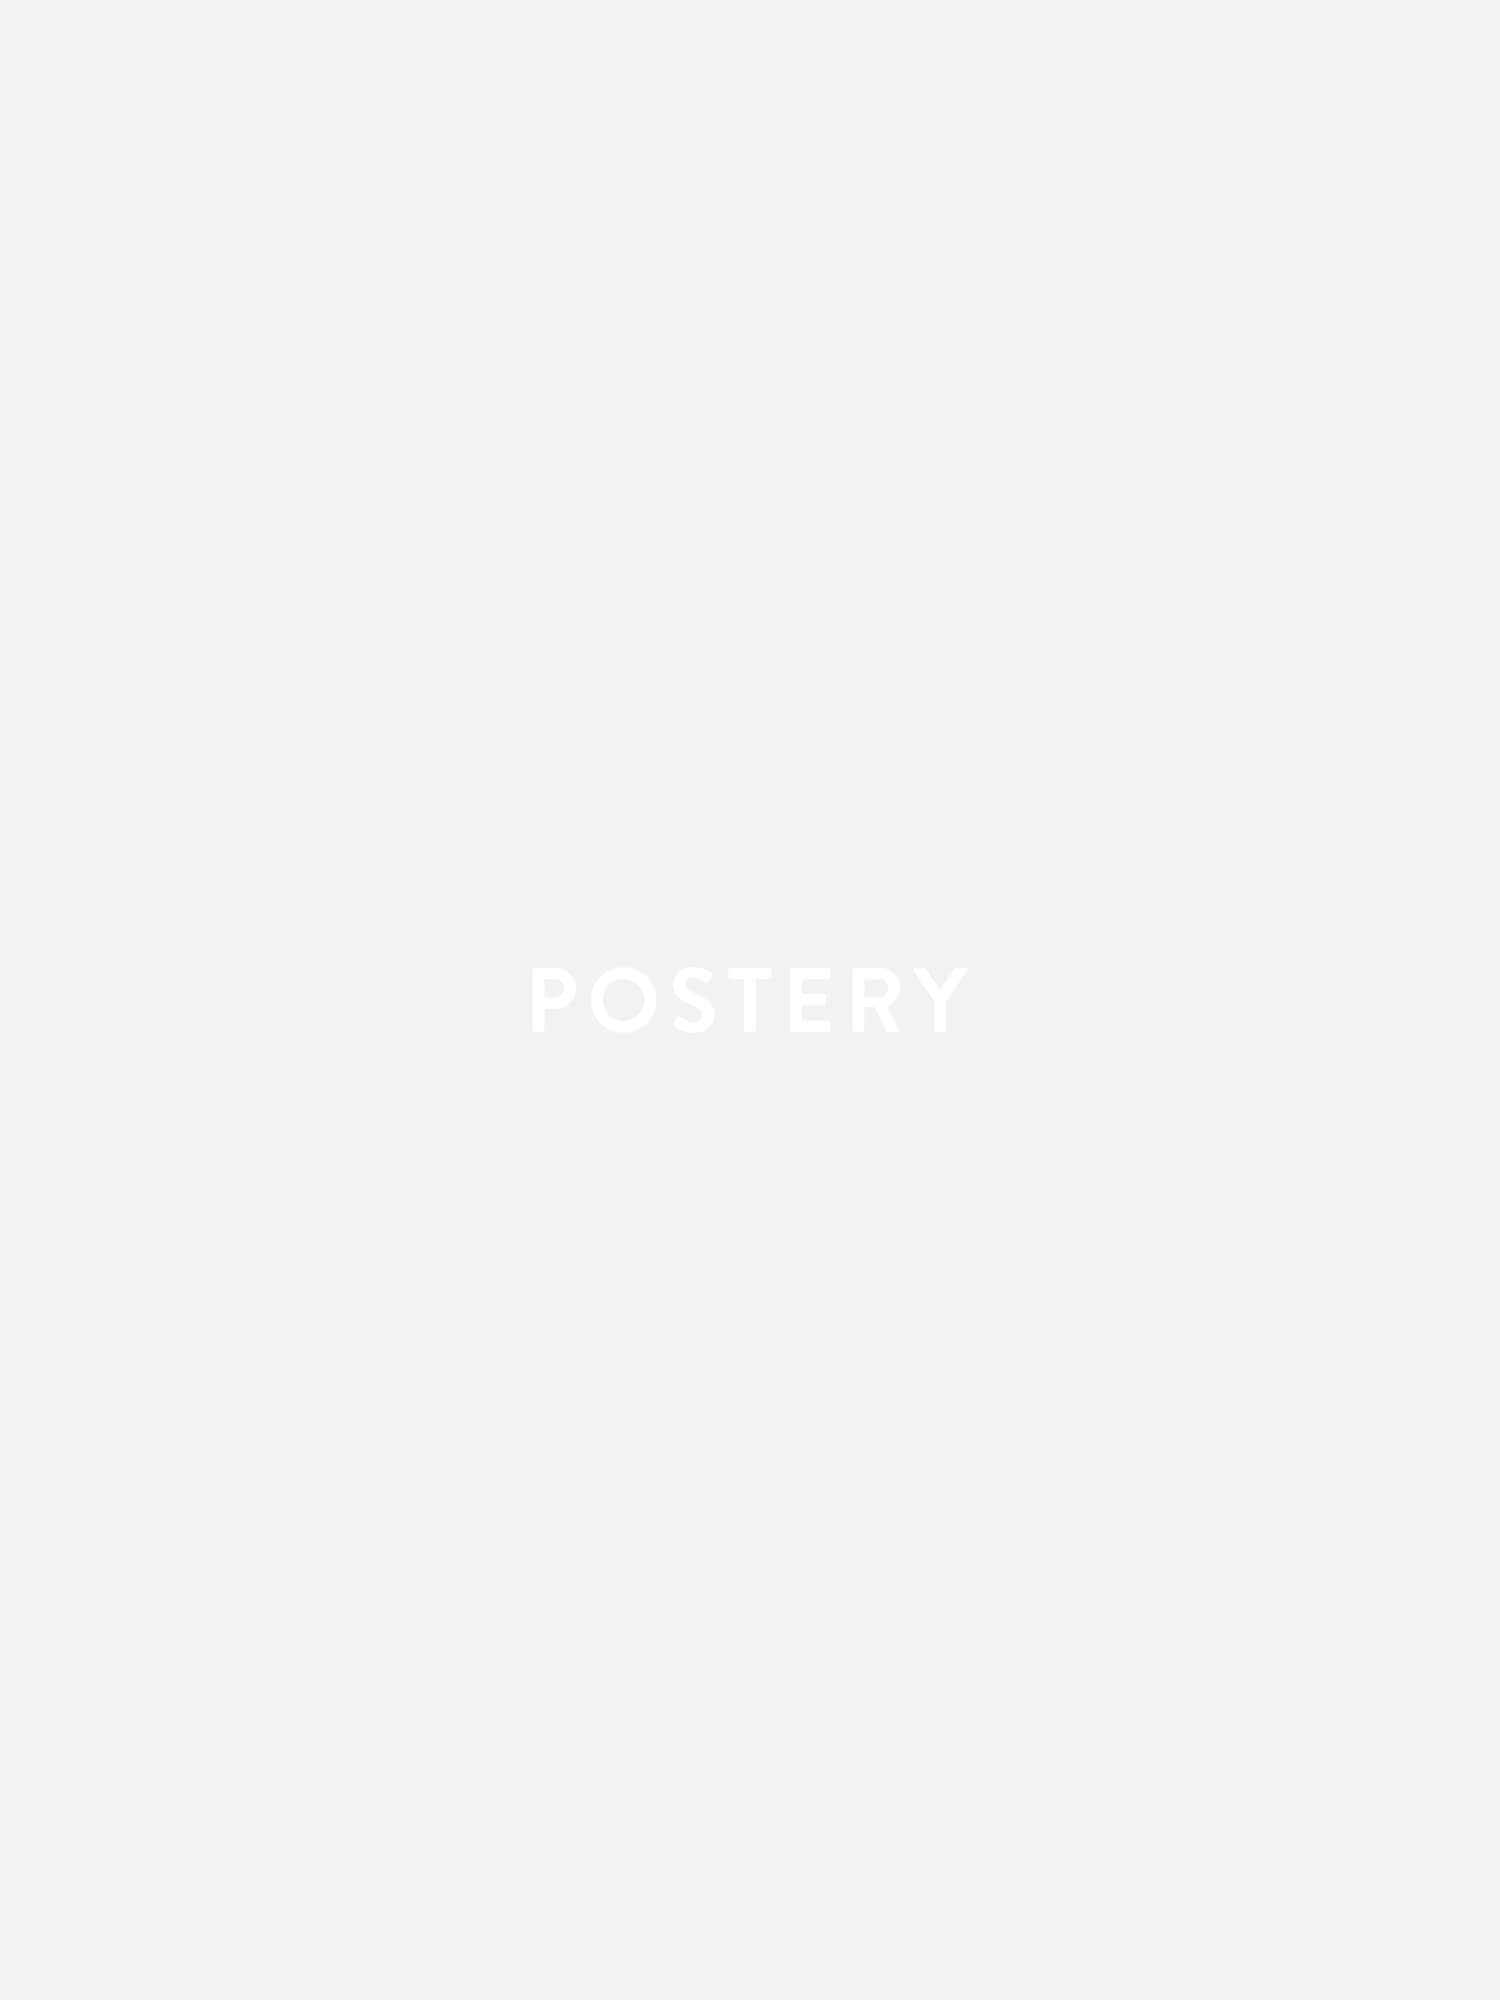 Old Camera Poster